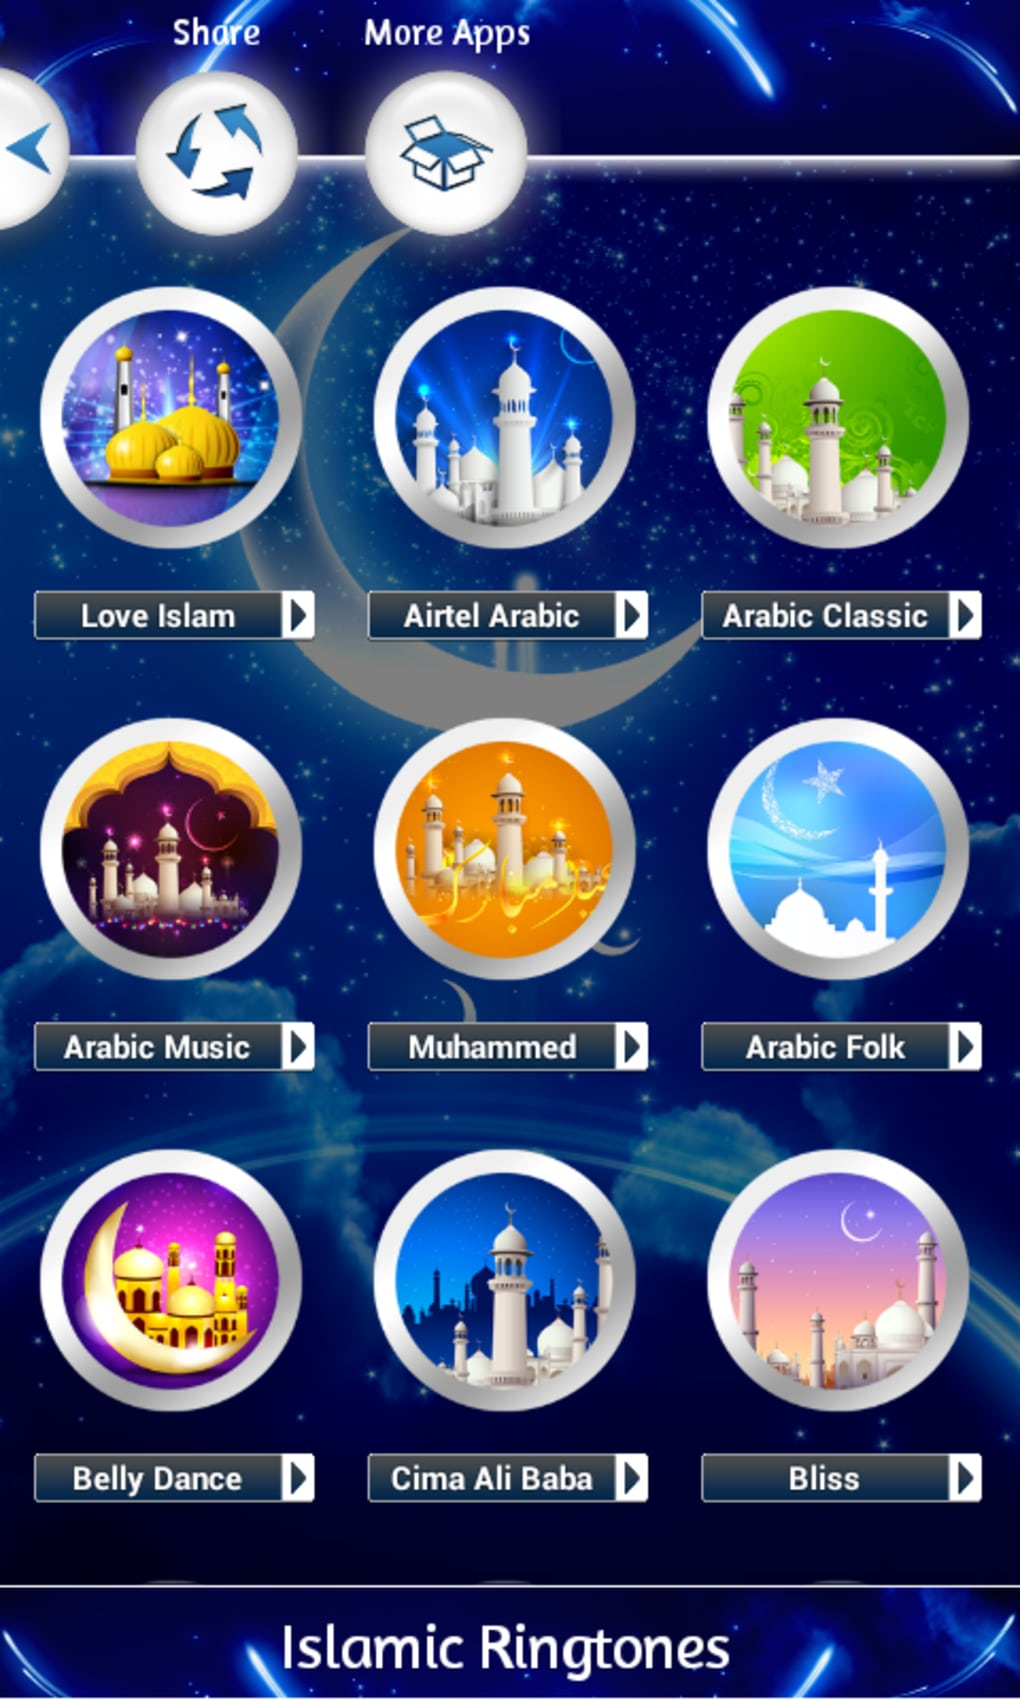 Islamic Ringtones New for Android - Download